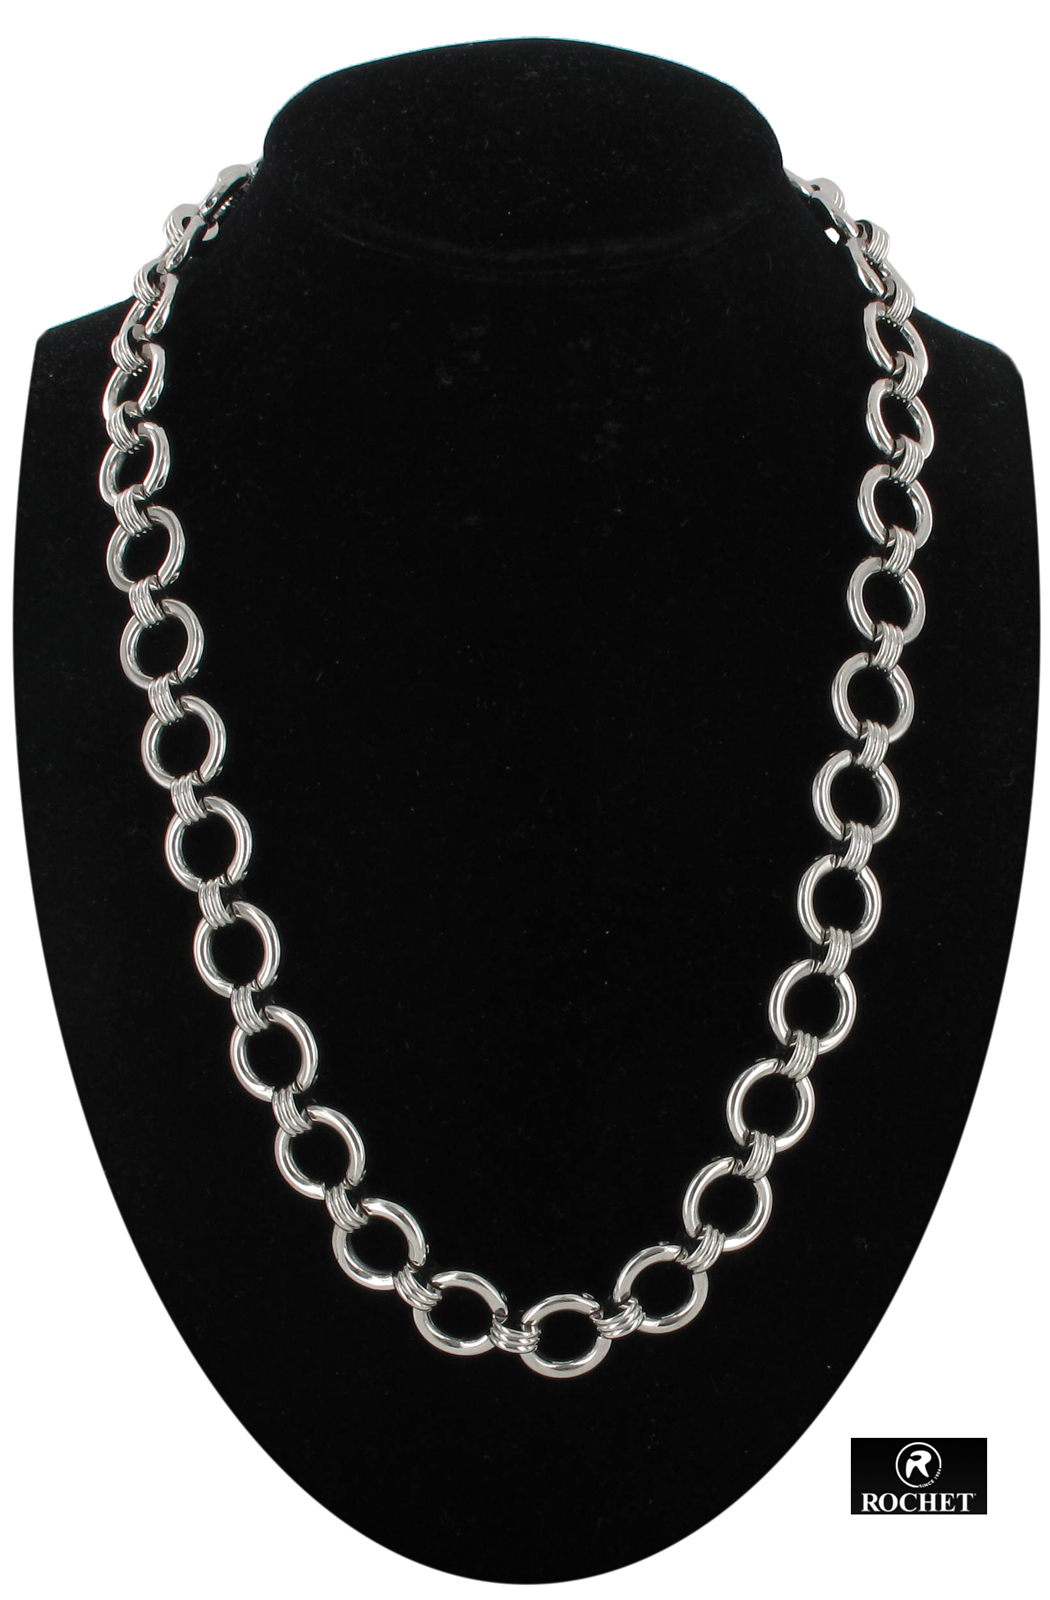 Rochet Mens Chain Link Necklace Stainless Steel Circles